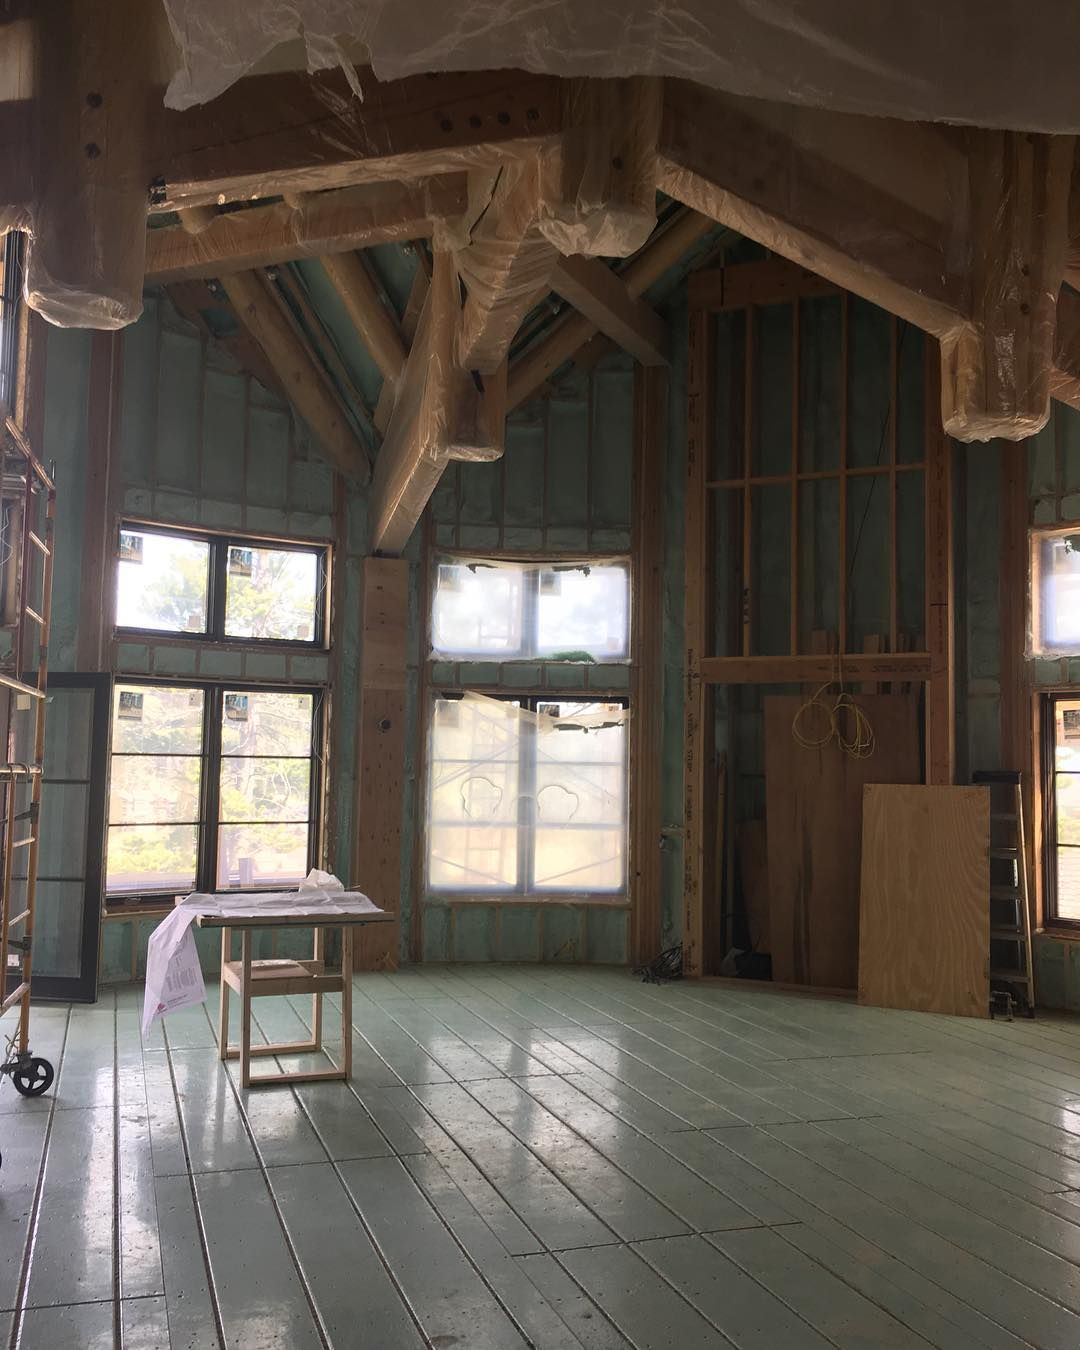 Over 6800 sq ft of Warmboard is being installed in this